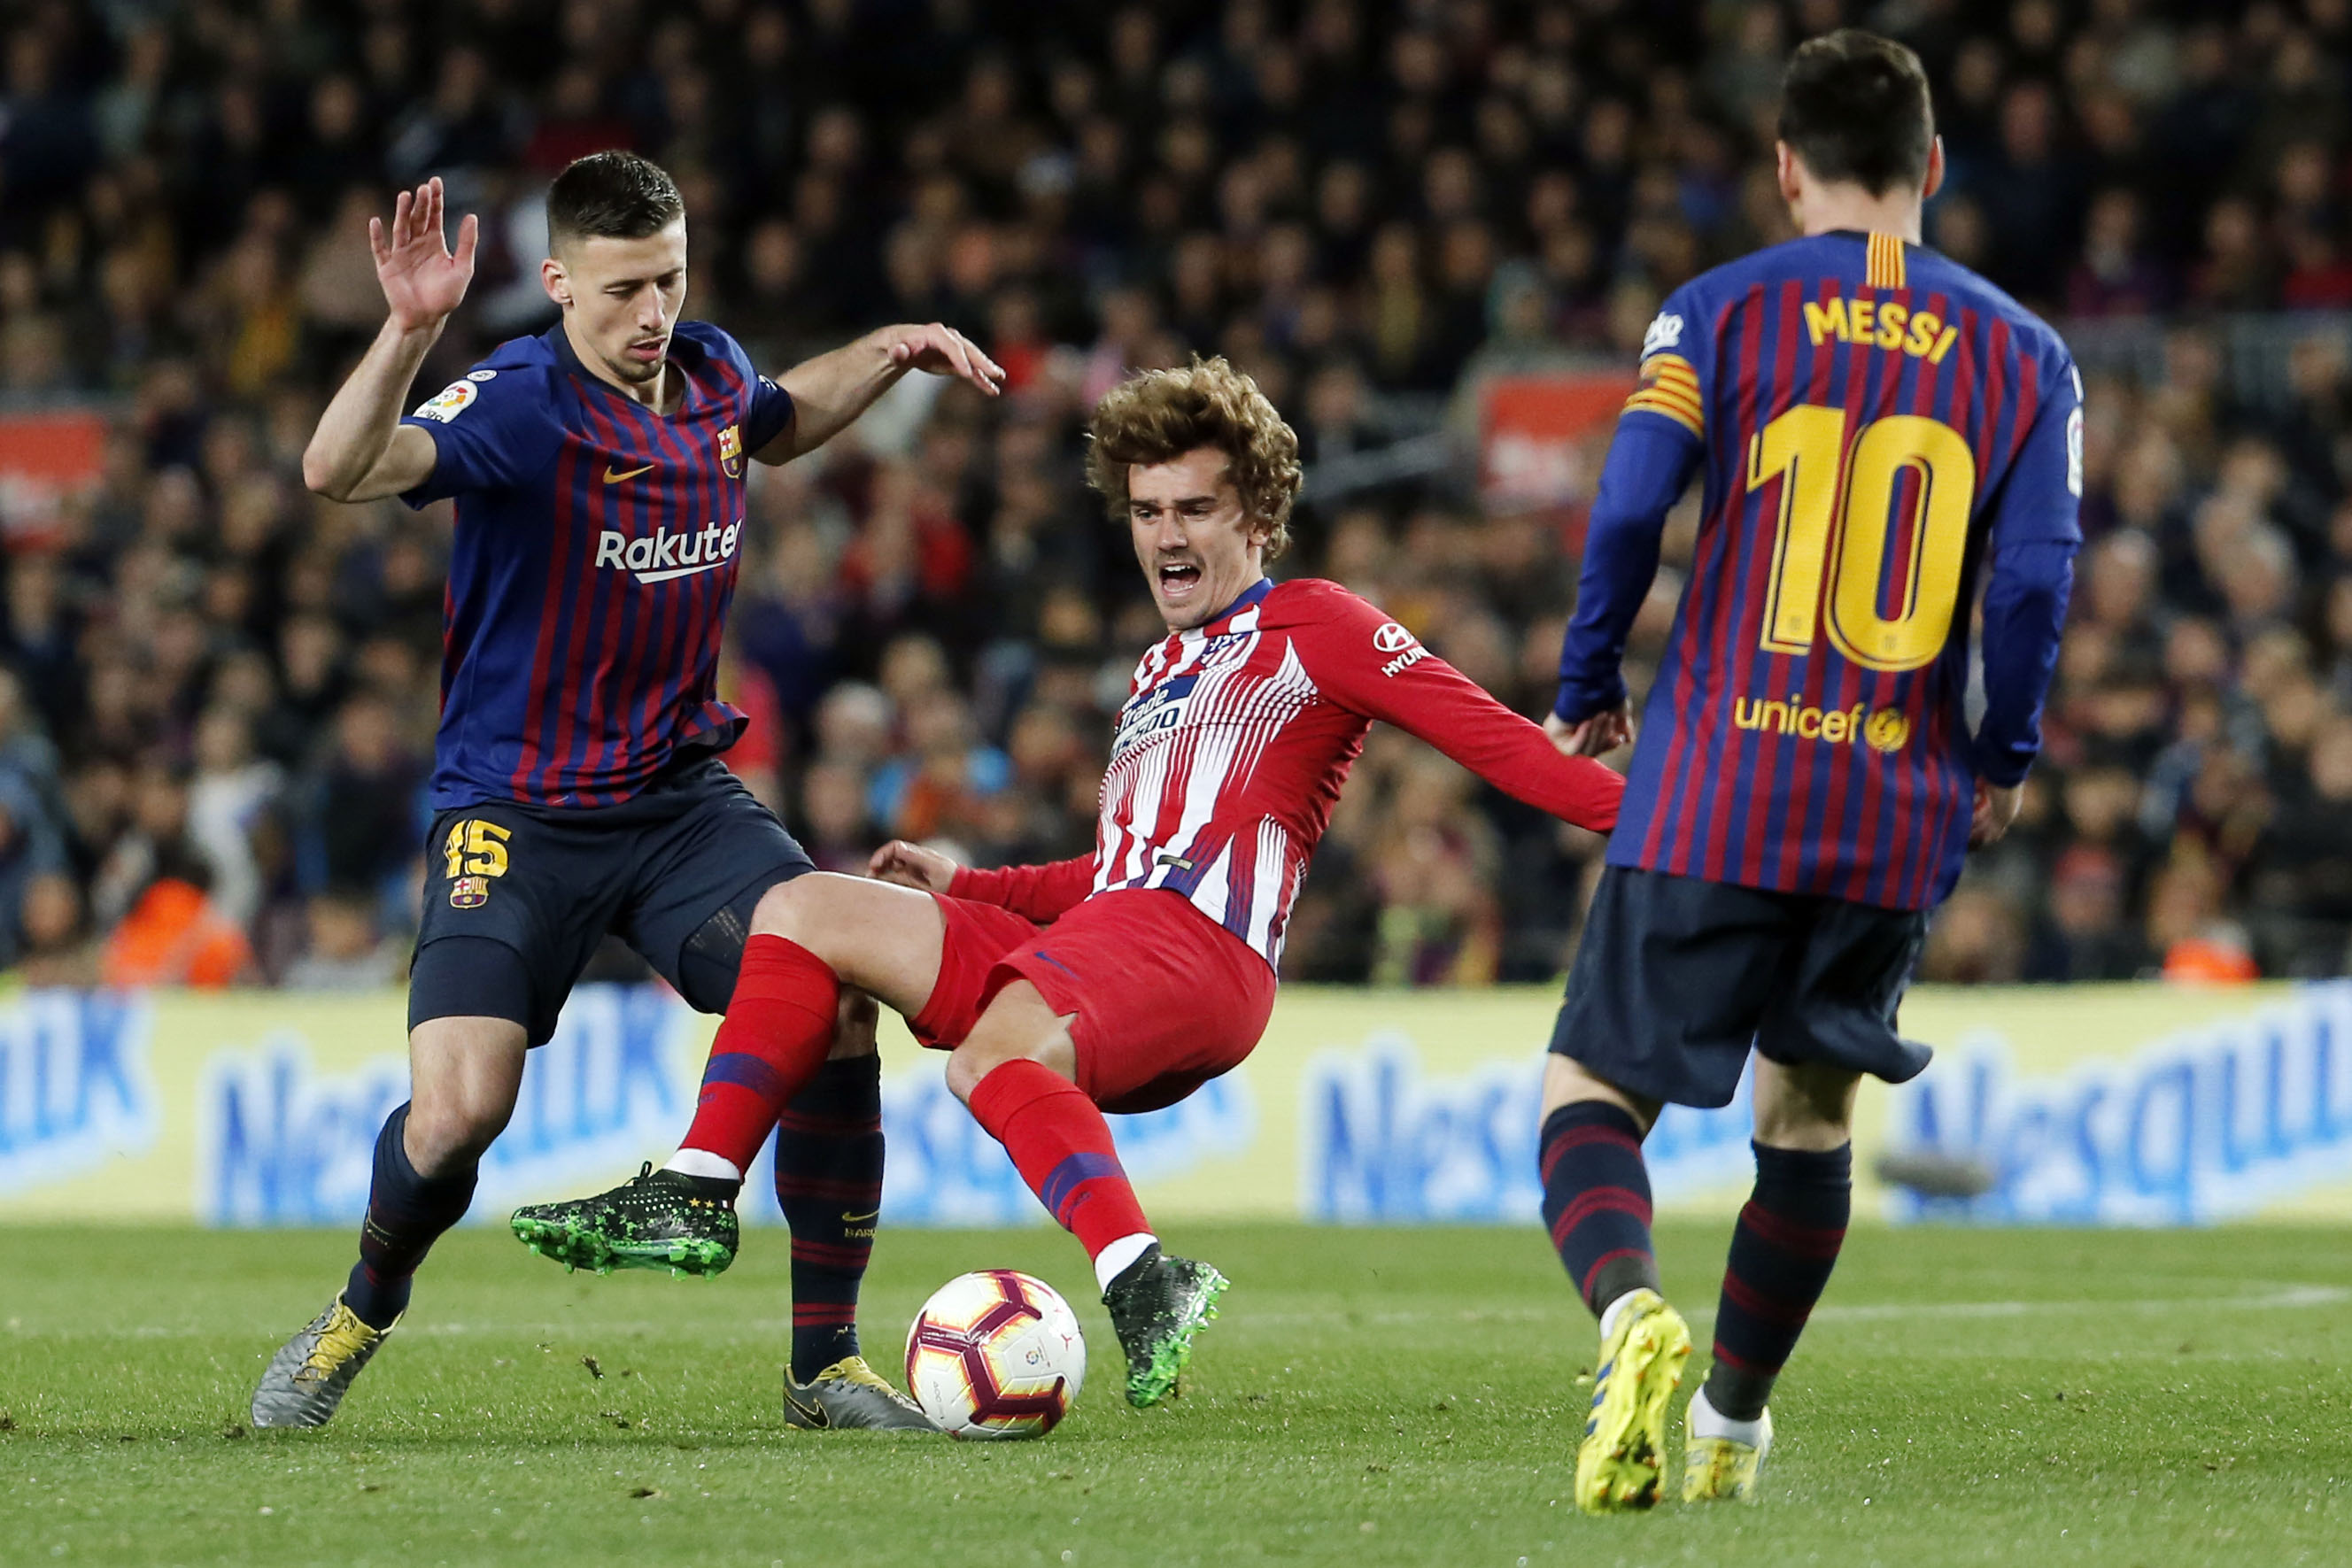 Football - Transferts - En signant au Barça, Griezmann change encore de dimension